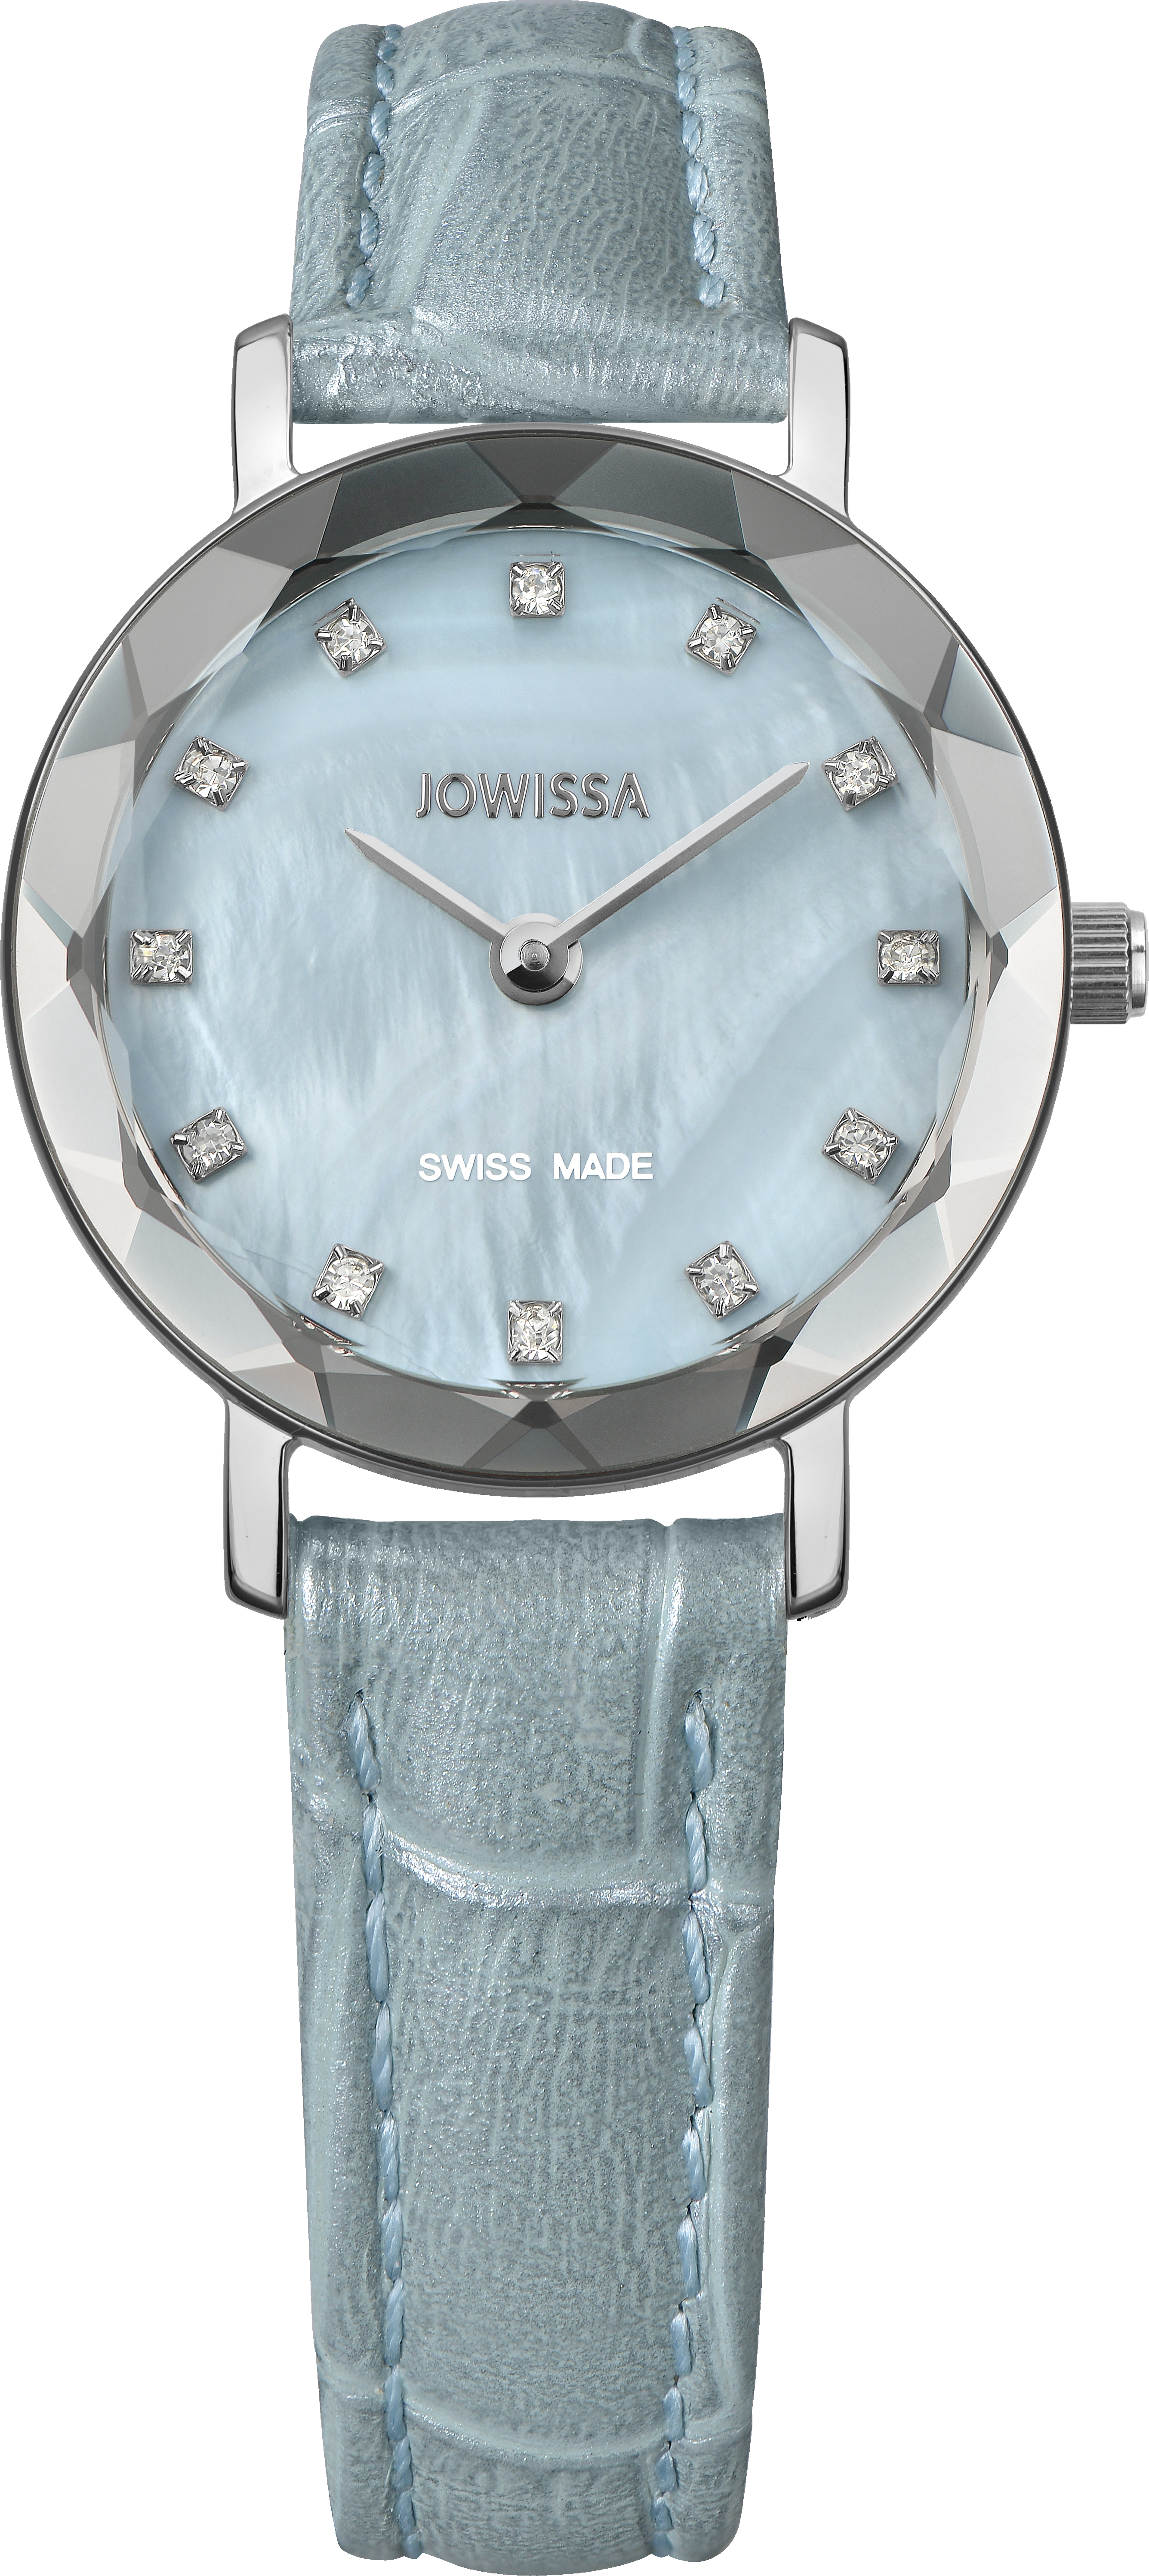 J5.642.S CringView Aura Jowissa Watch.jpg